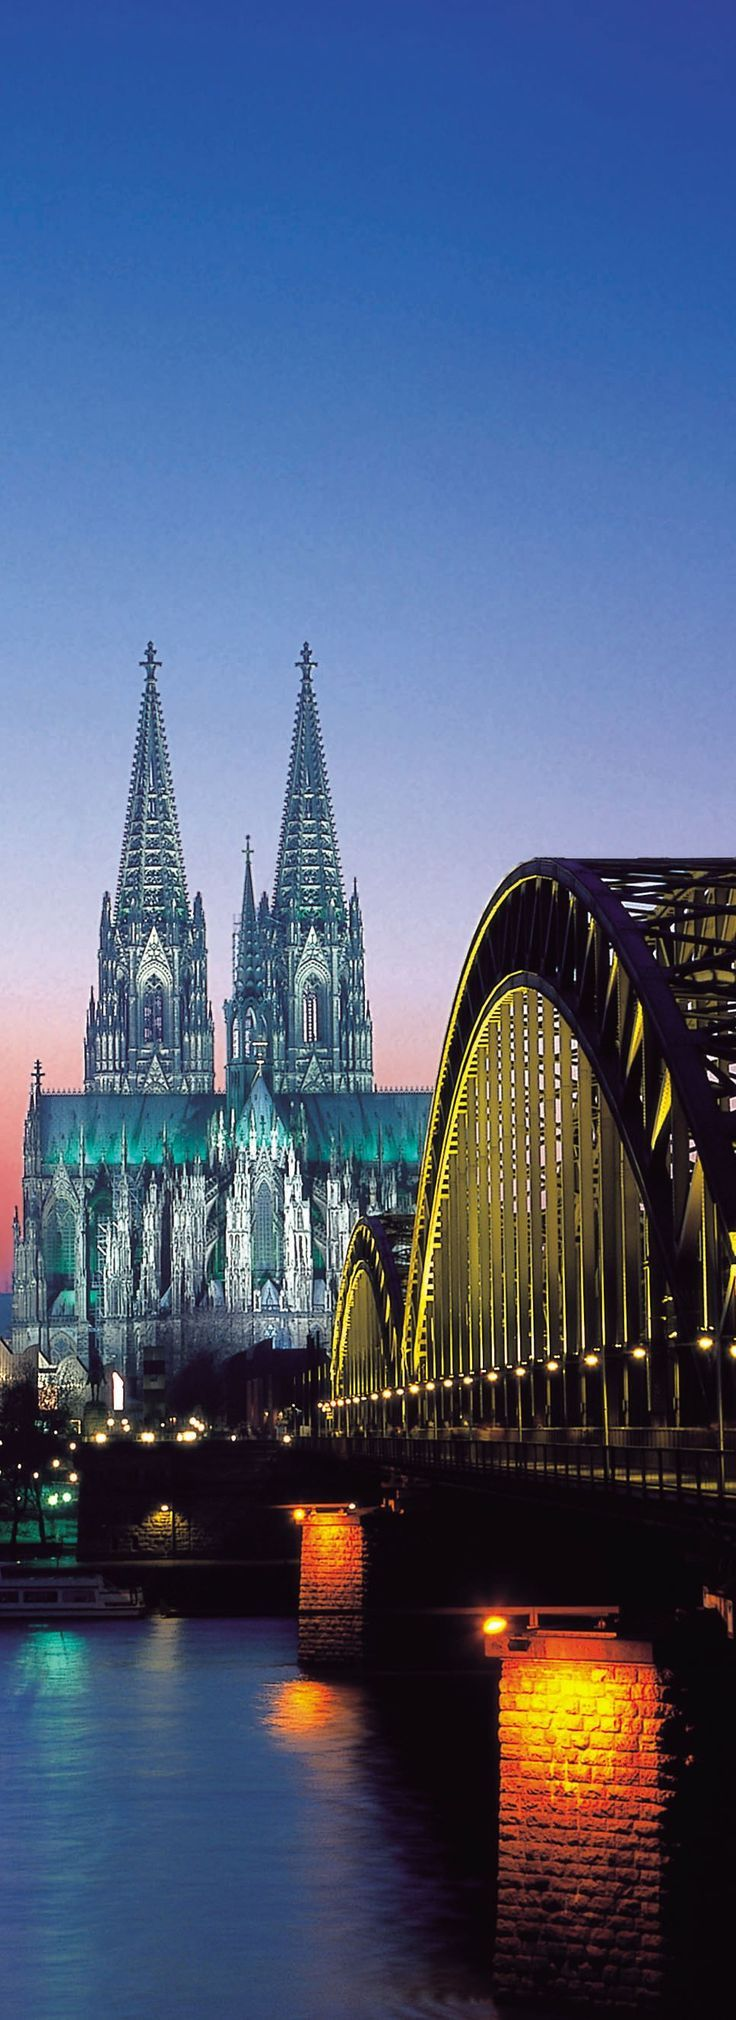 Pin By Lafeelo On Picture In 2020 Cologne Cathedral Cologne Germany Beautiful Places In The World